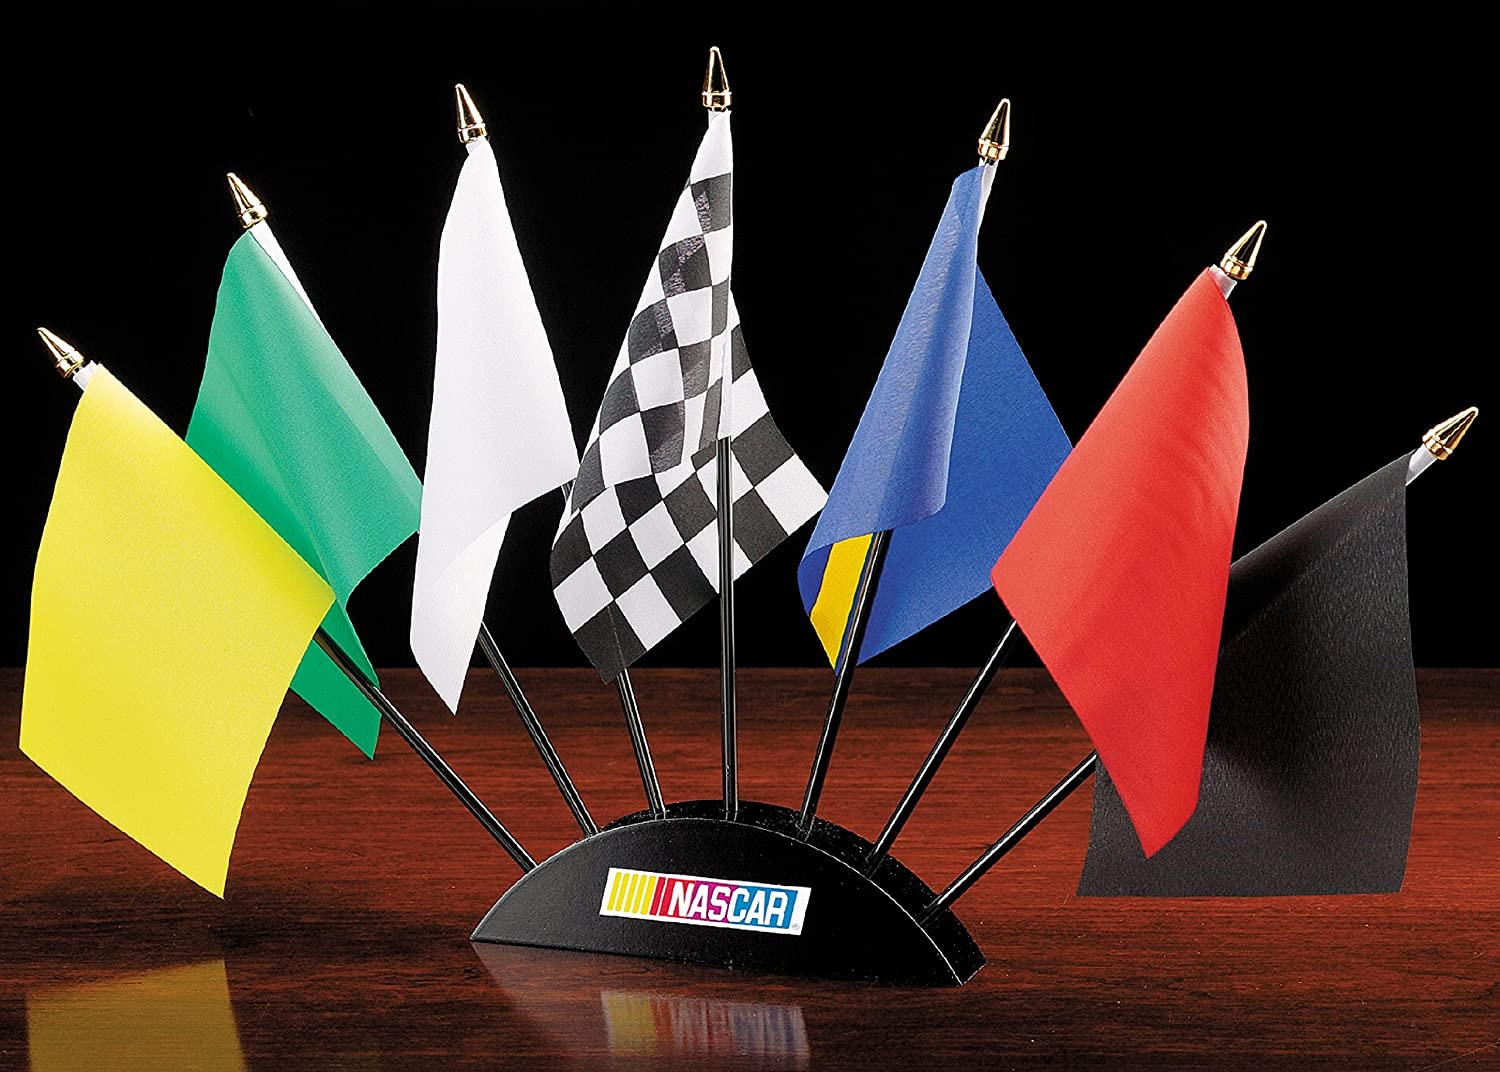 Race Car Flags Meaning